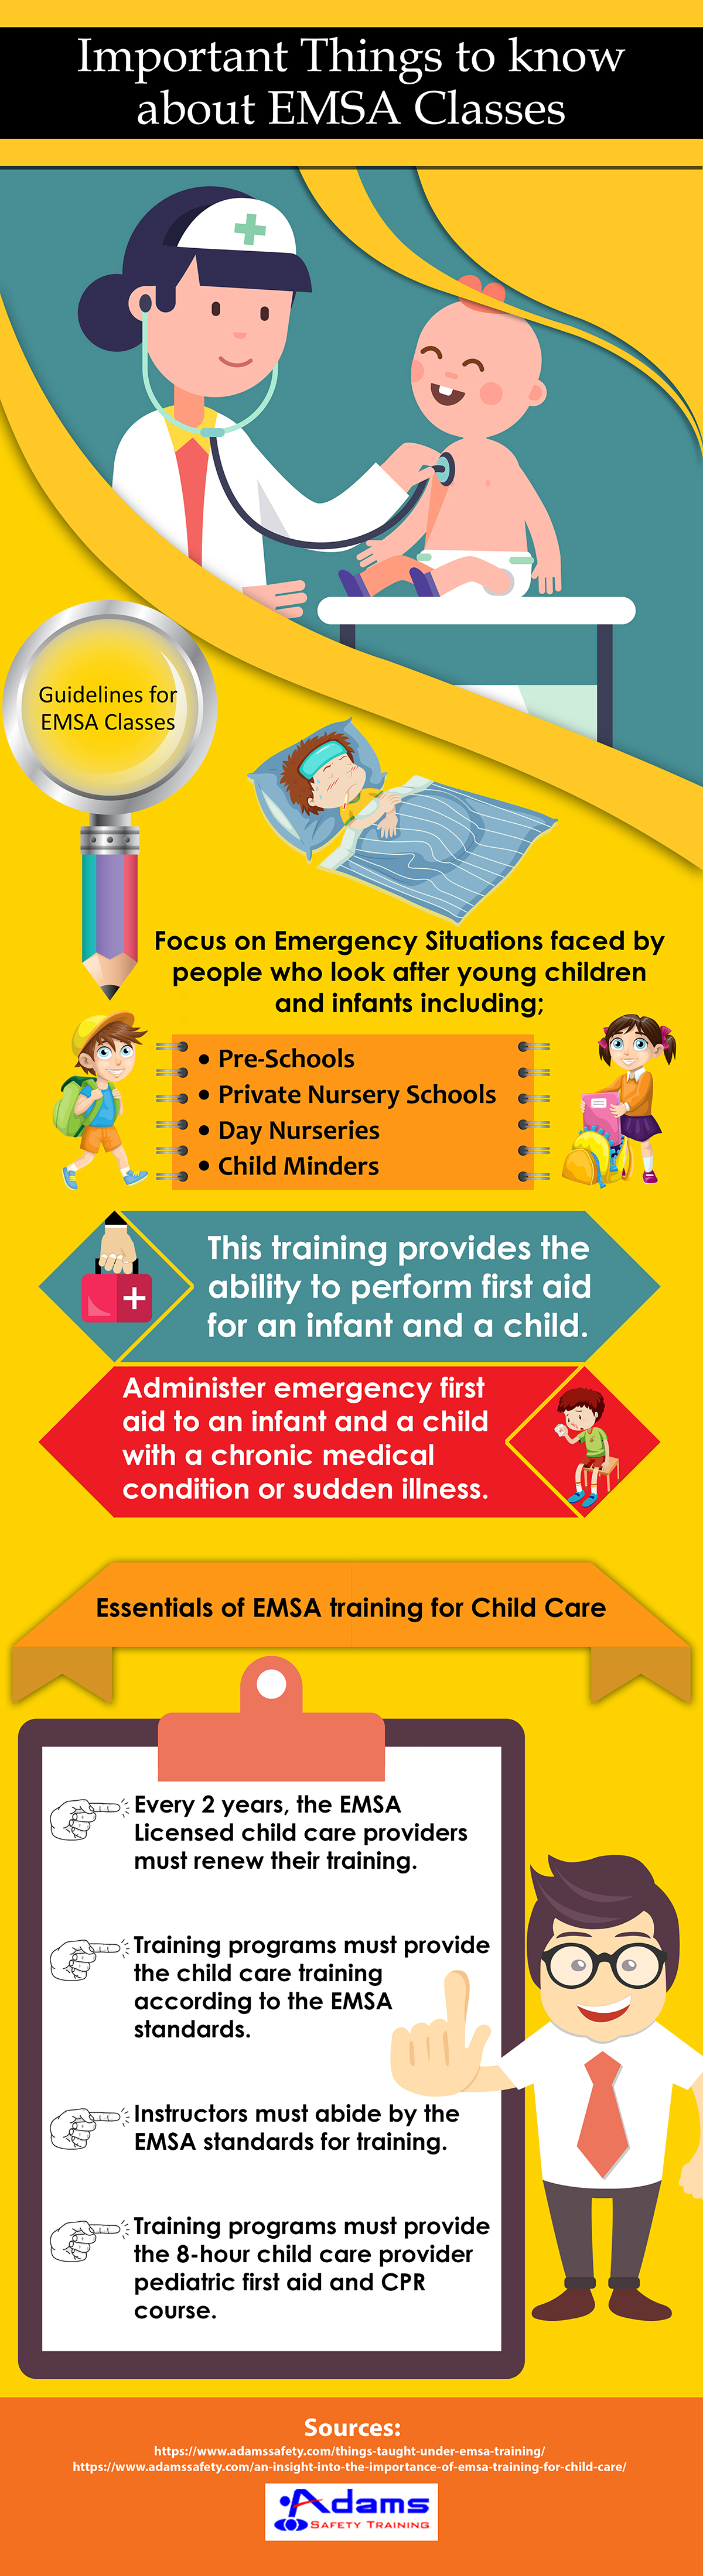 What Are The Benefits Of Going For Emsa Classes Adams Safety